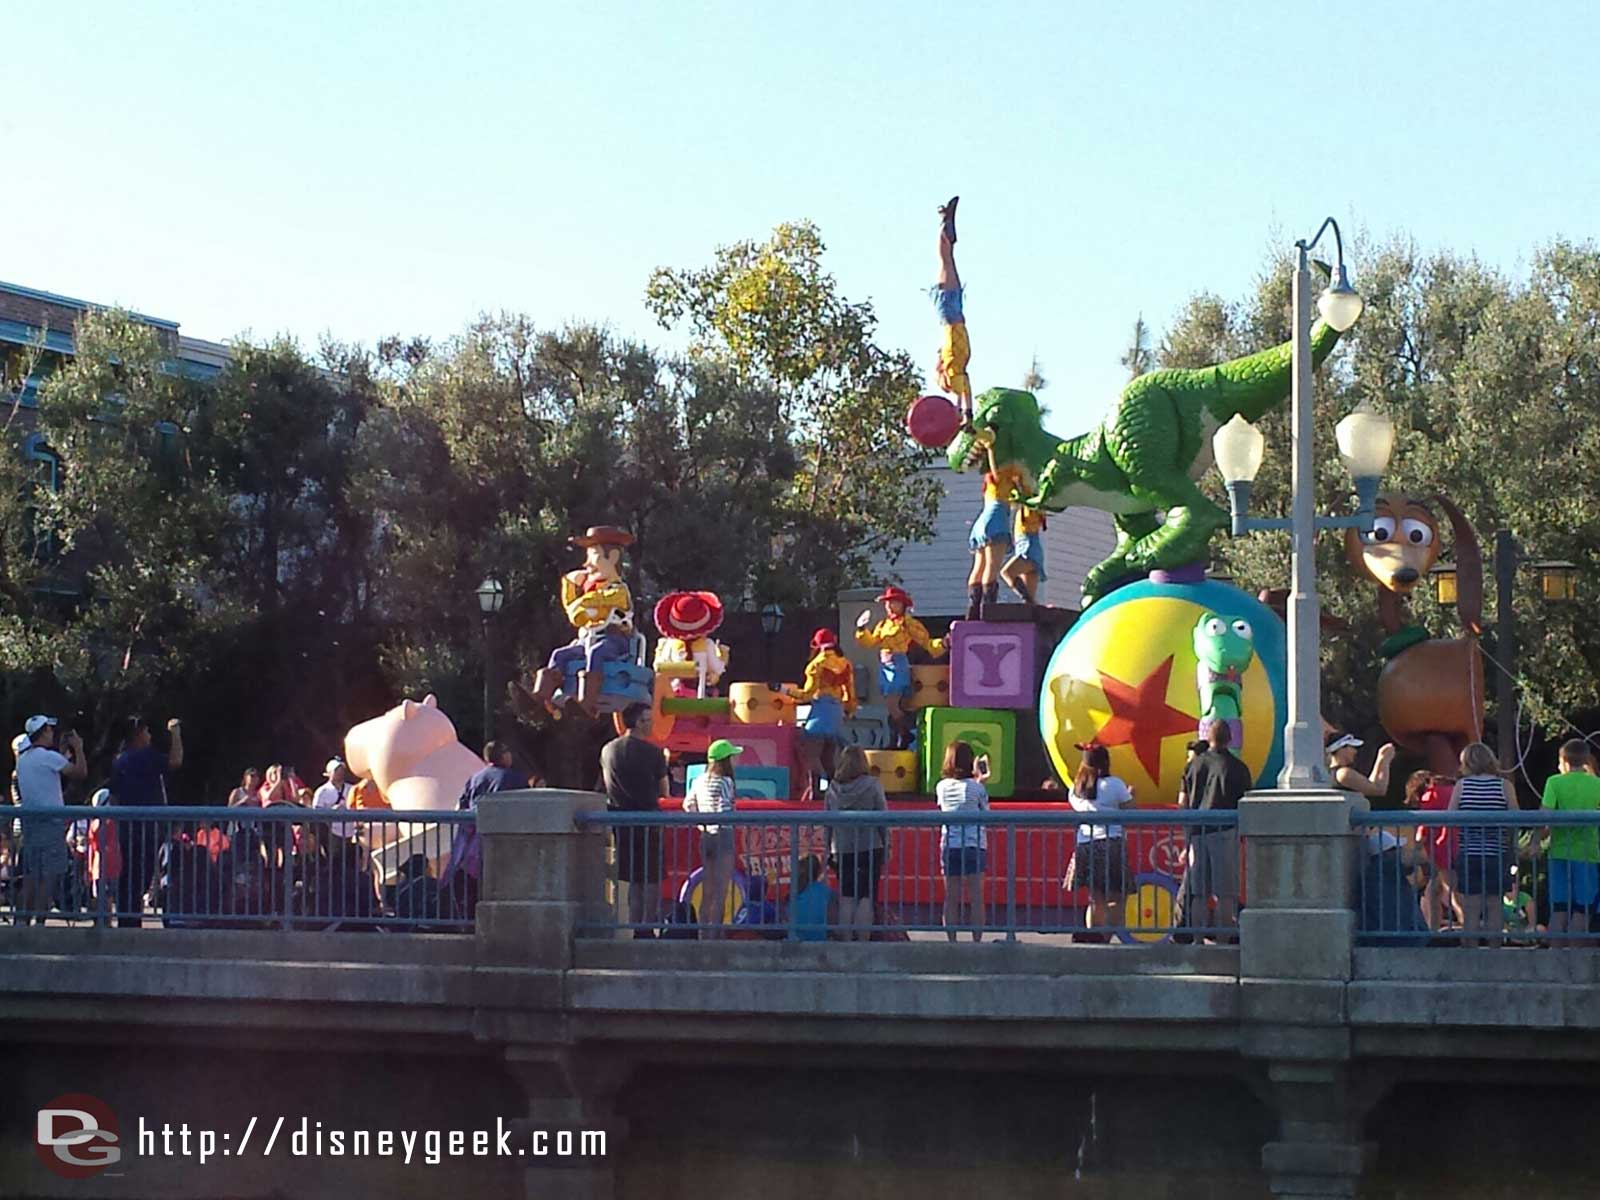 The Pixar Play Parade passing by the Wharf area